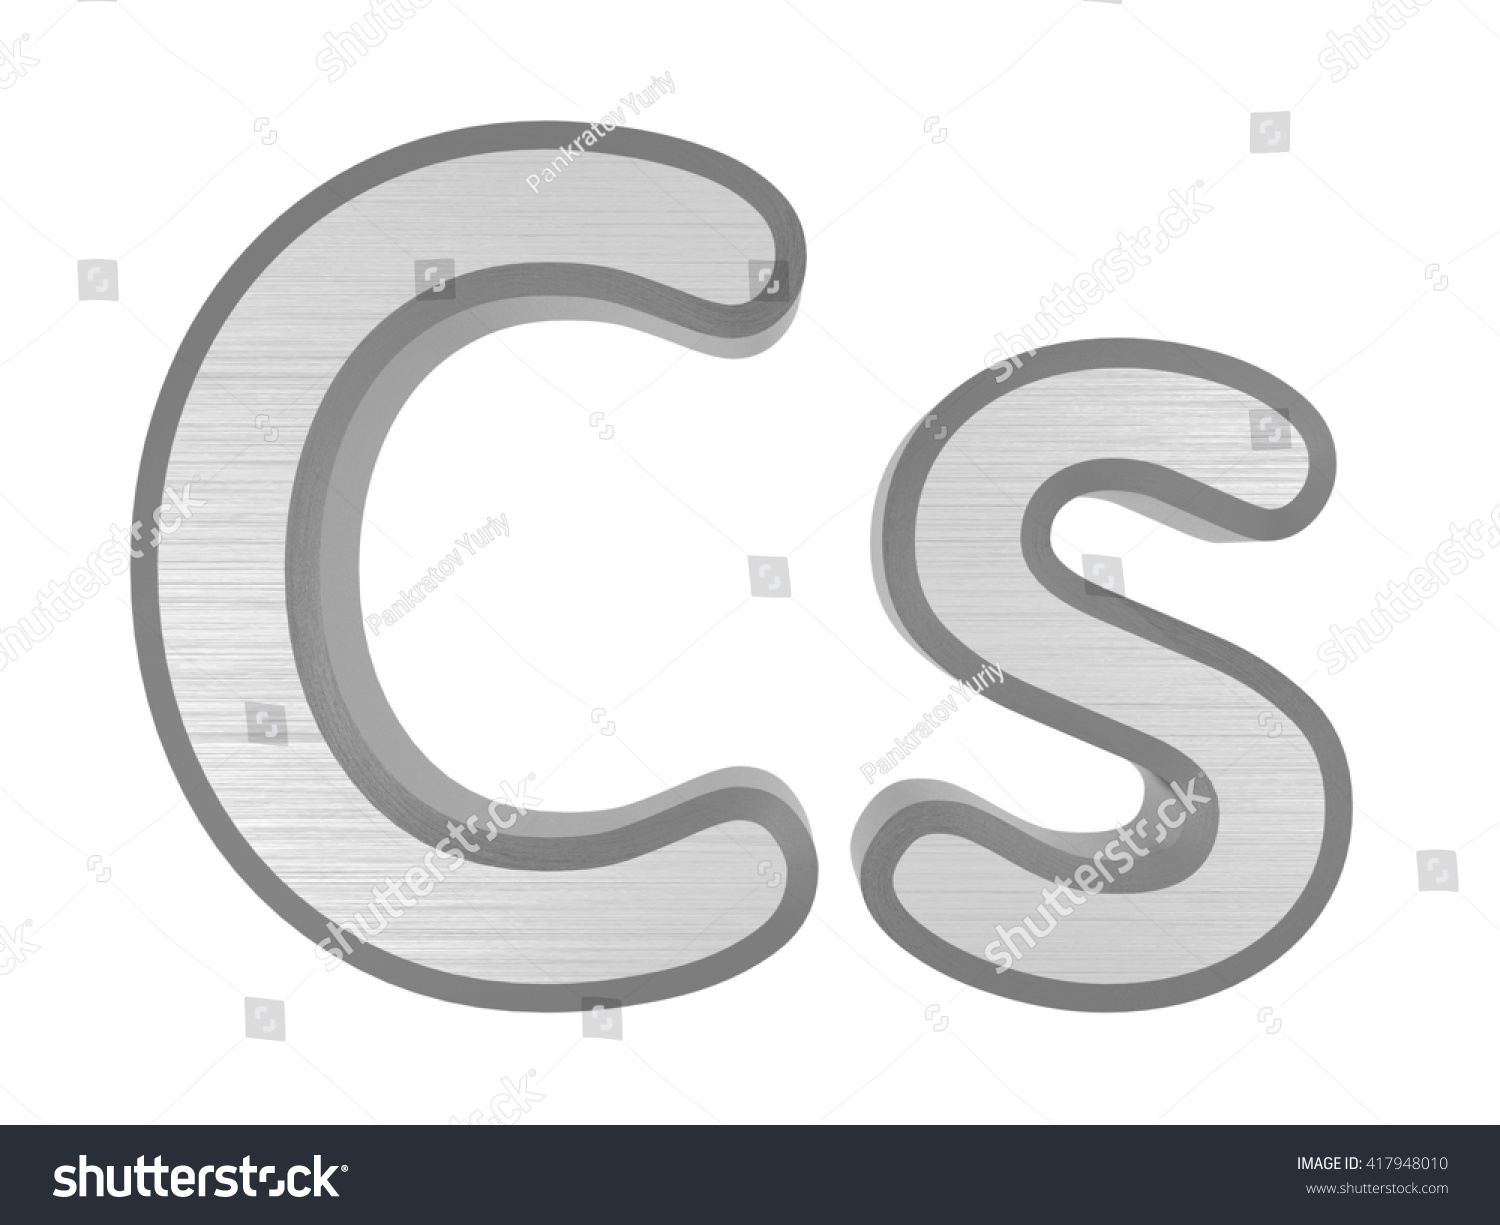 Periodic table elements cesium 3 d title stock illustration periodic table of elements cesium 3d title isolated on white 3d rendering urtaz Gallery